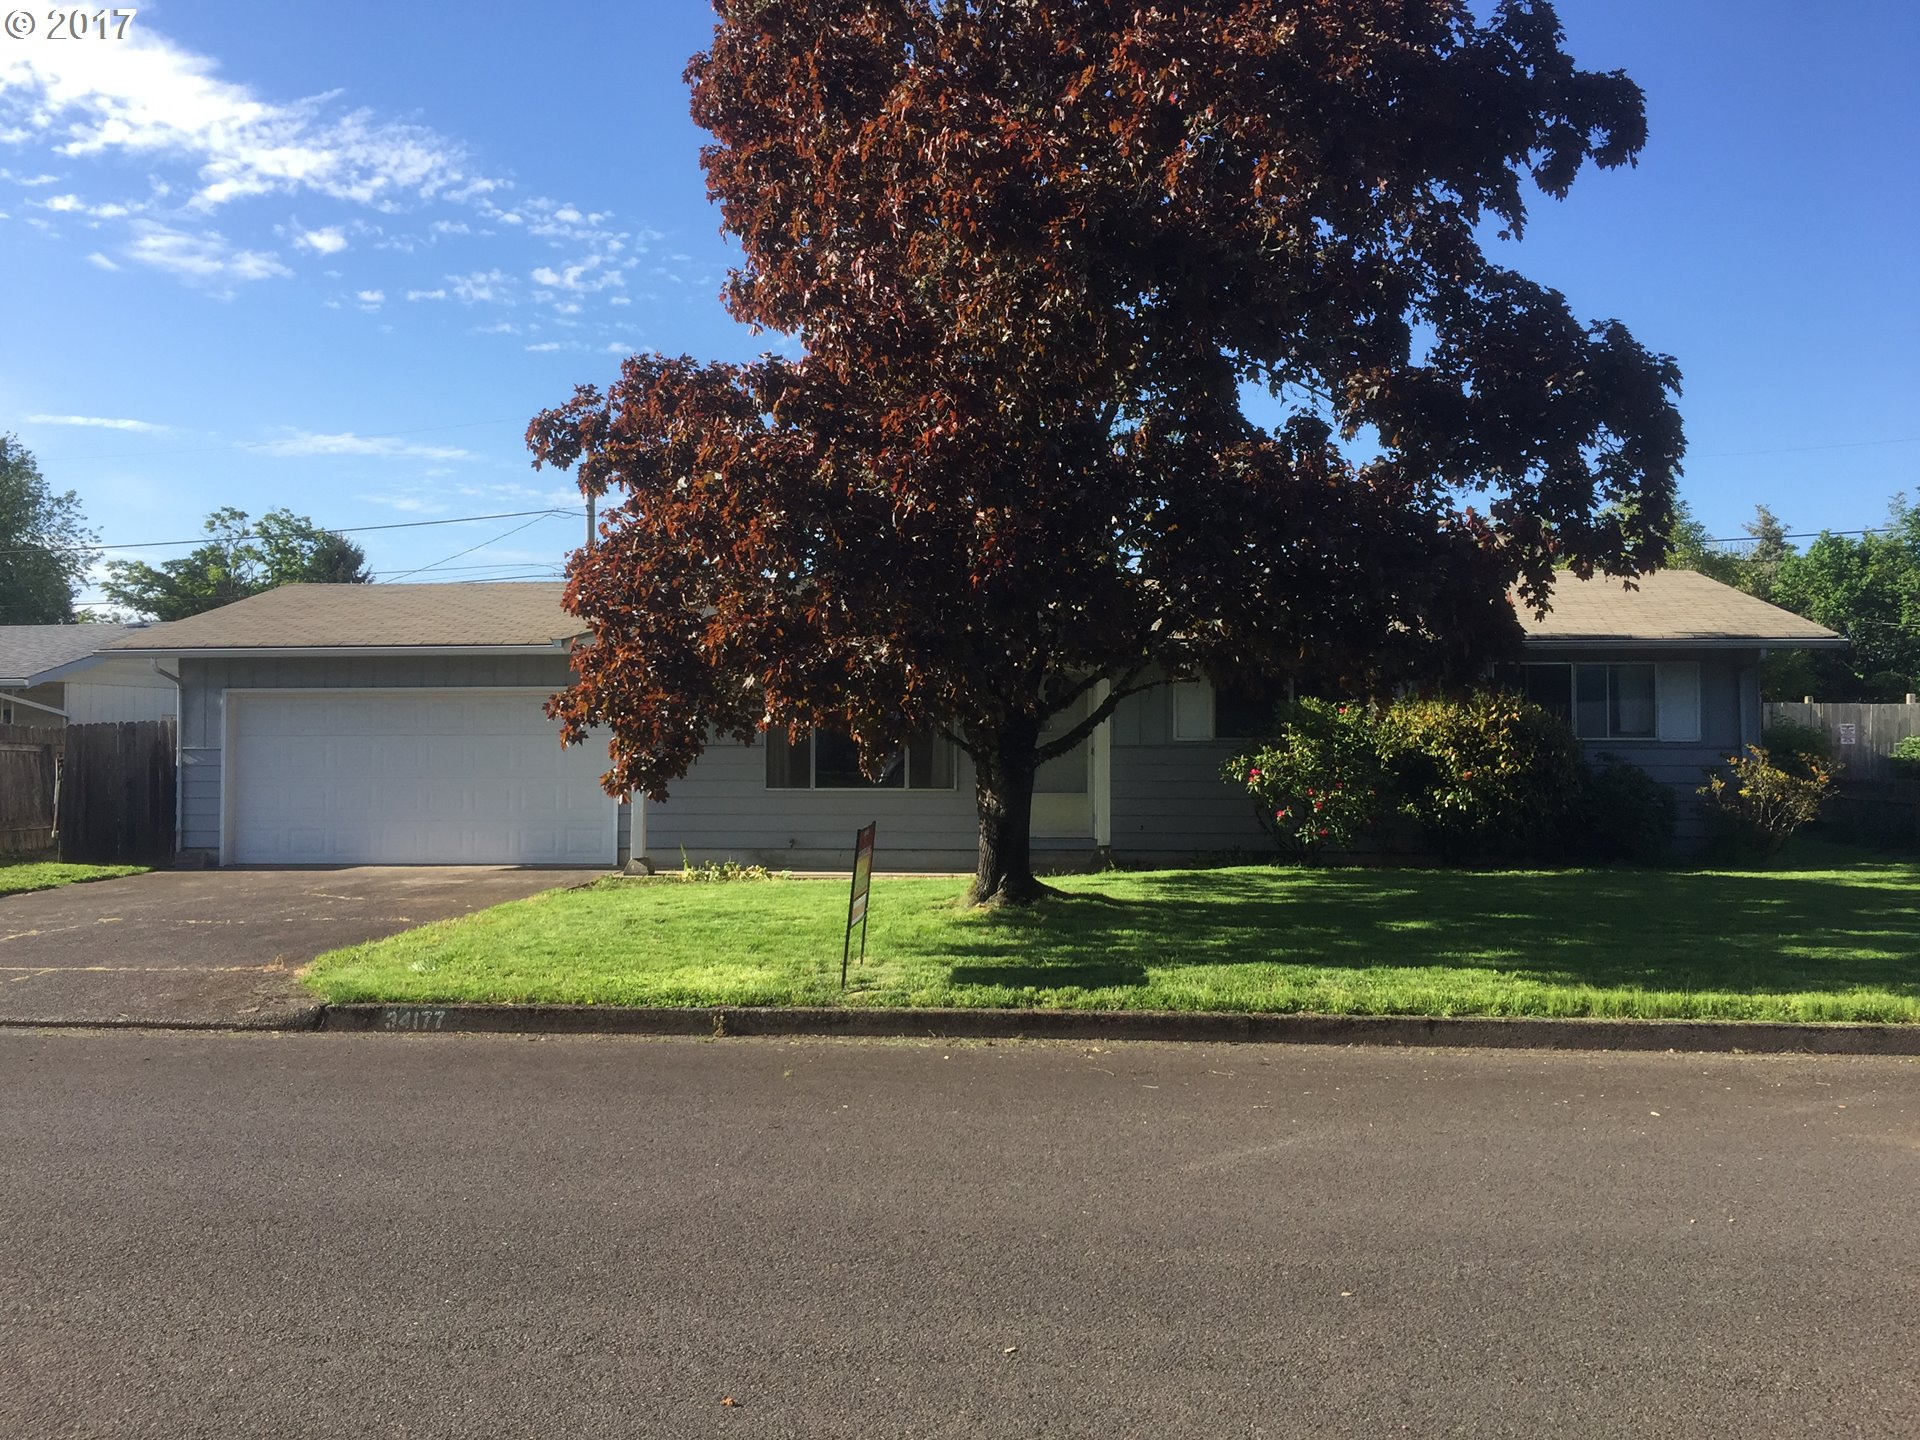 1112 sq. ft 3 bedrooms 1 bathrooms  House For Sale,Eugene, OR